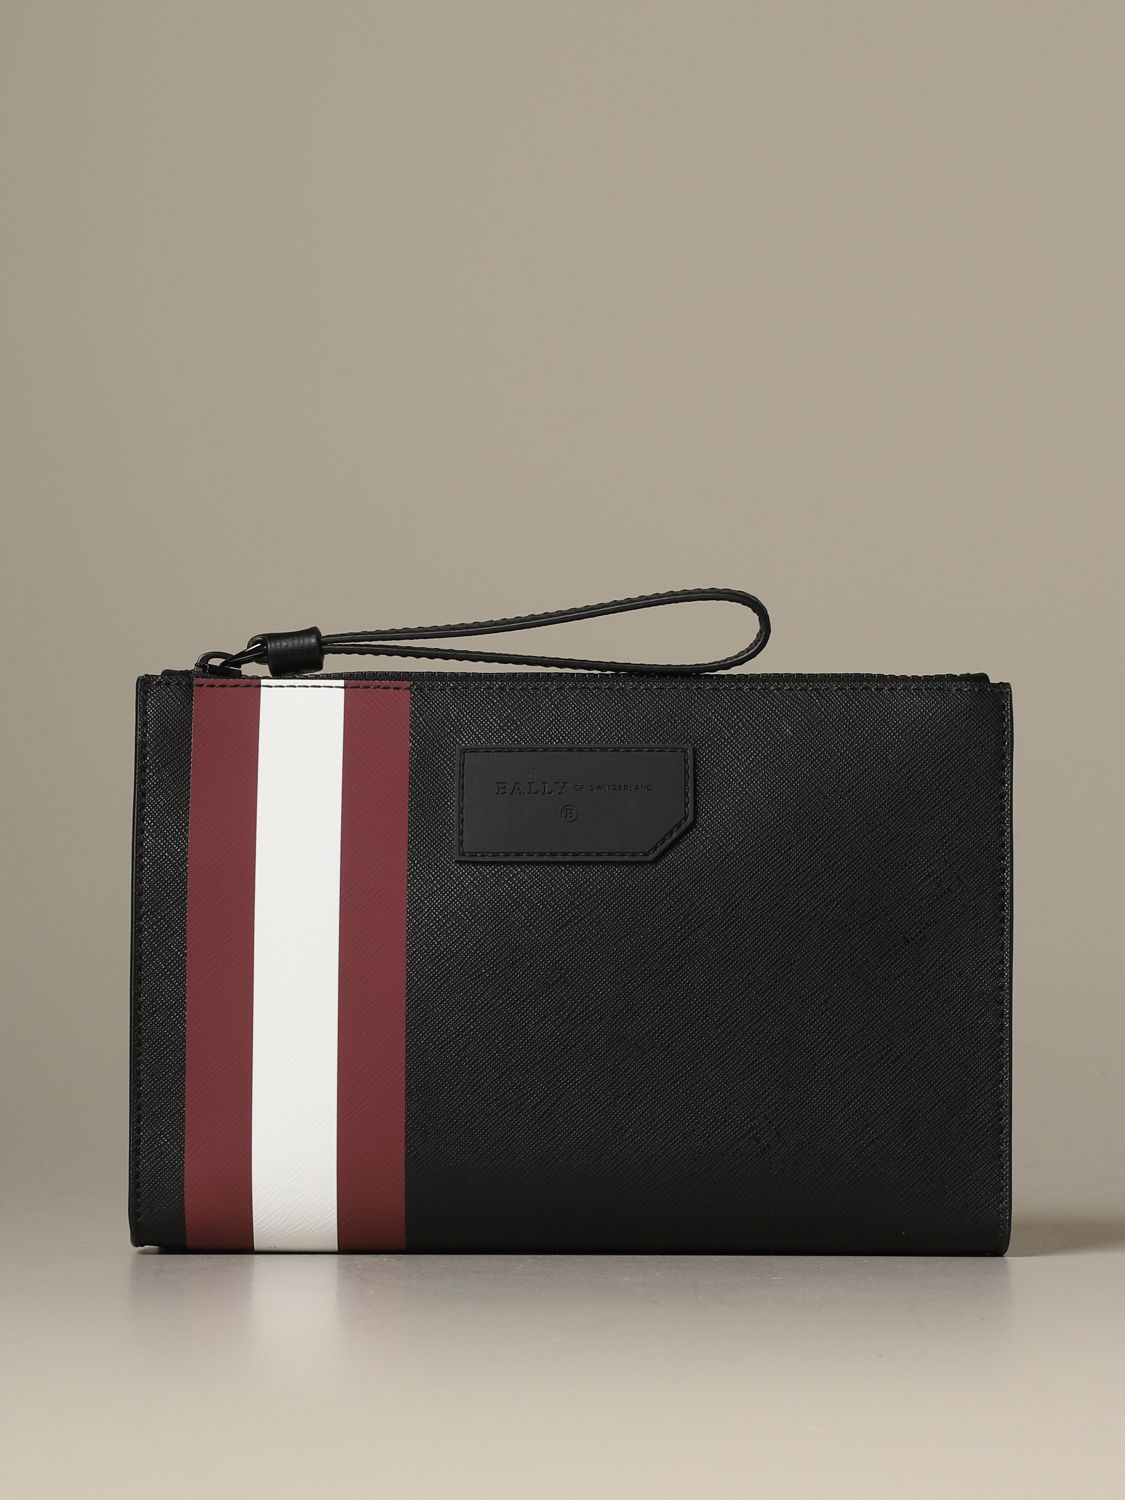 Briefcase Bally: Skid Bally clutch bag in coated canvas with trainspotting red 1